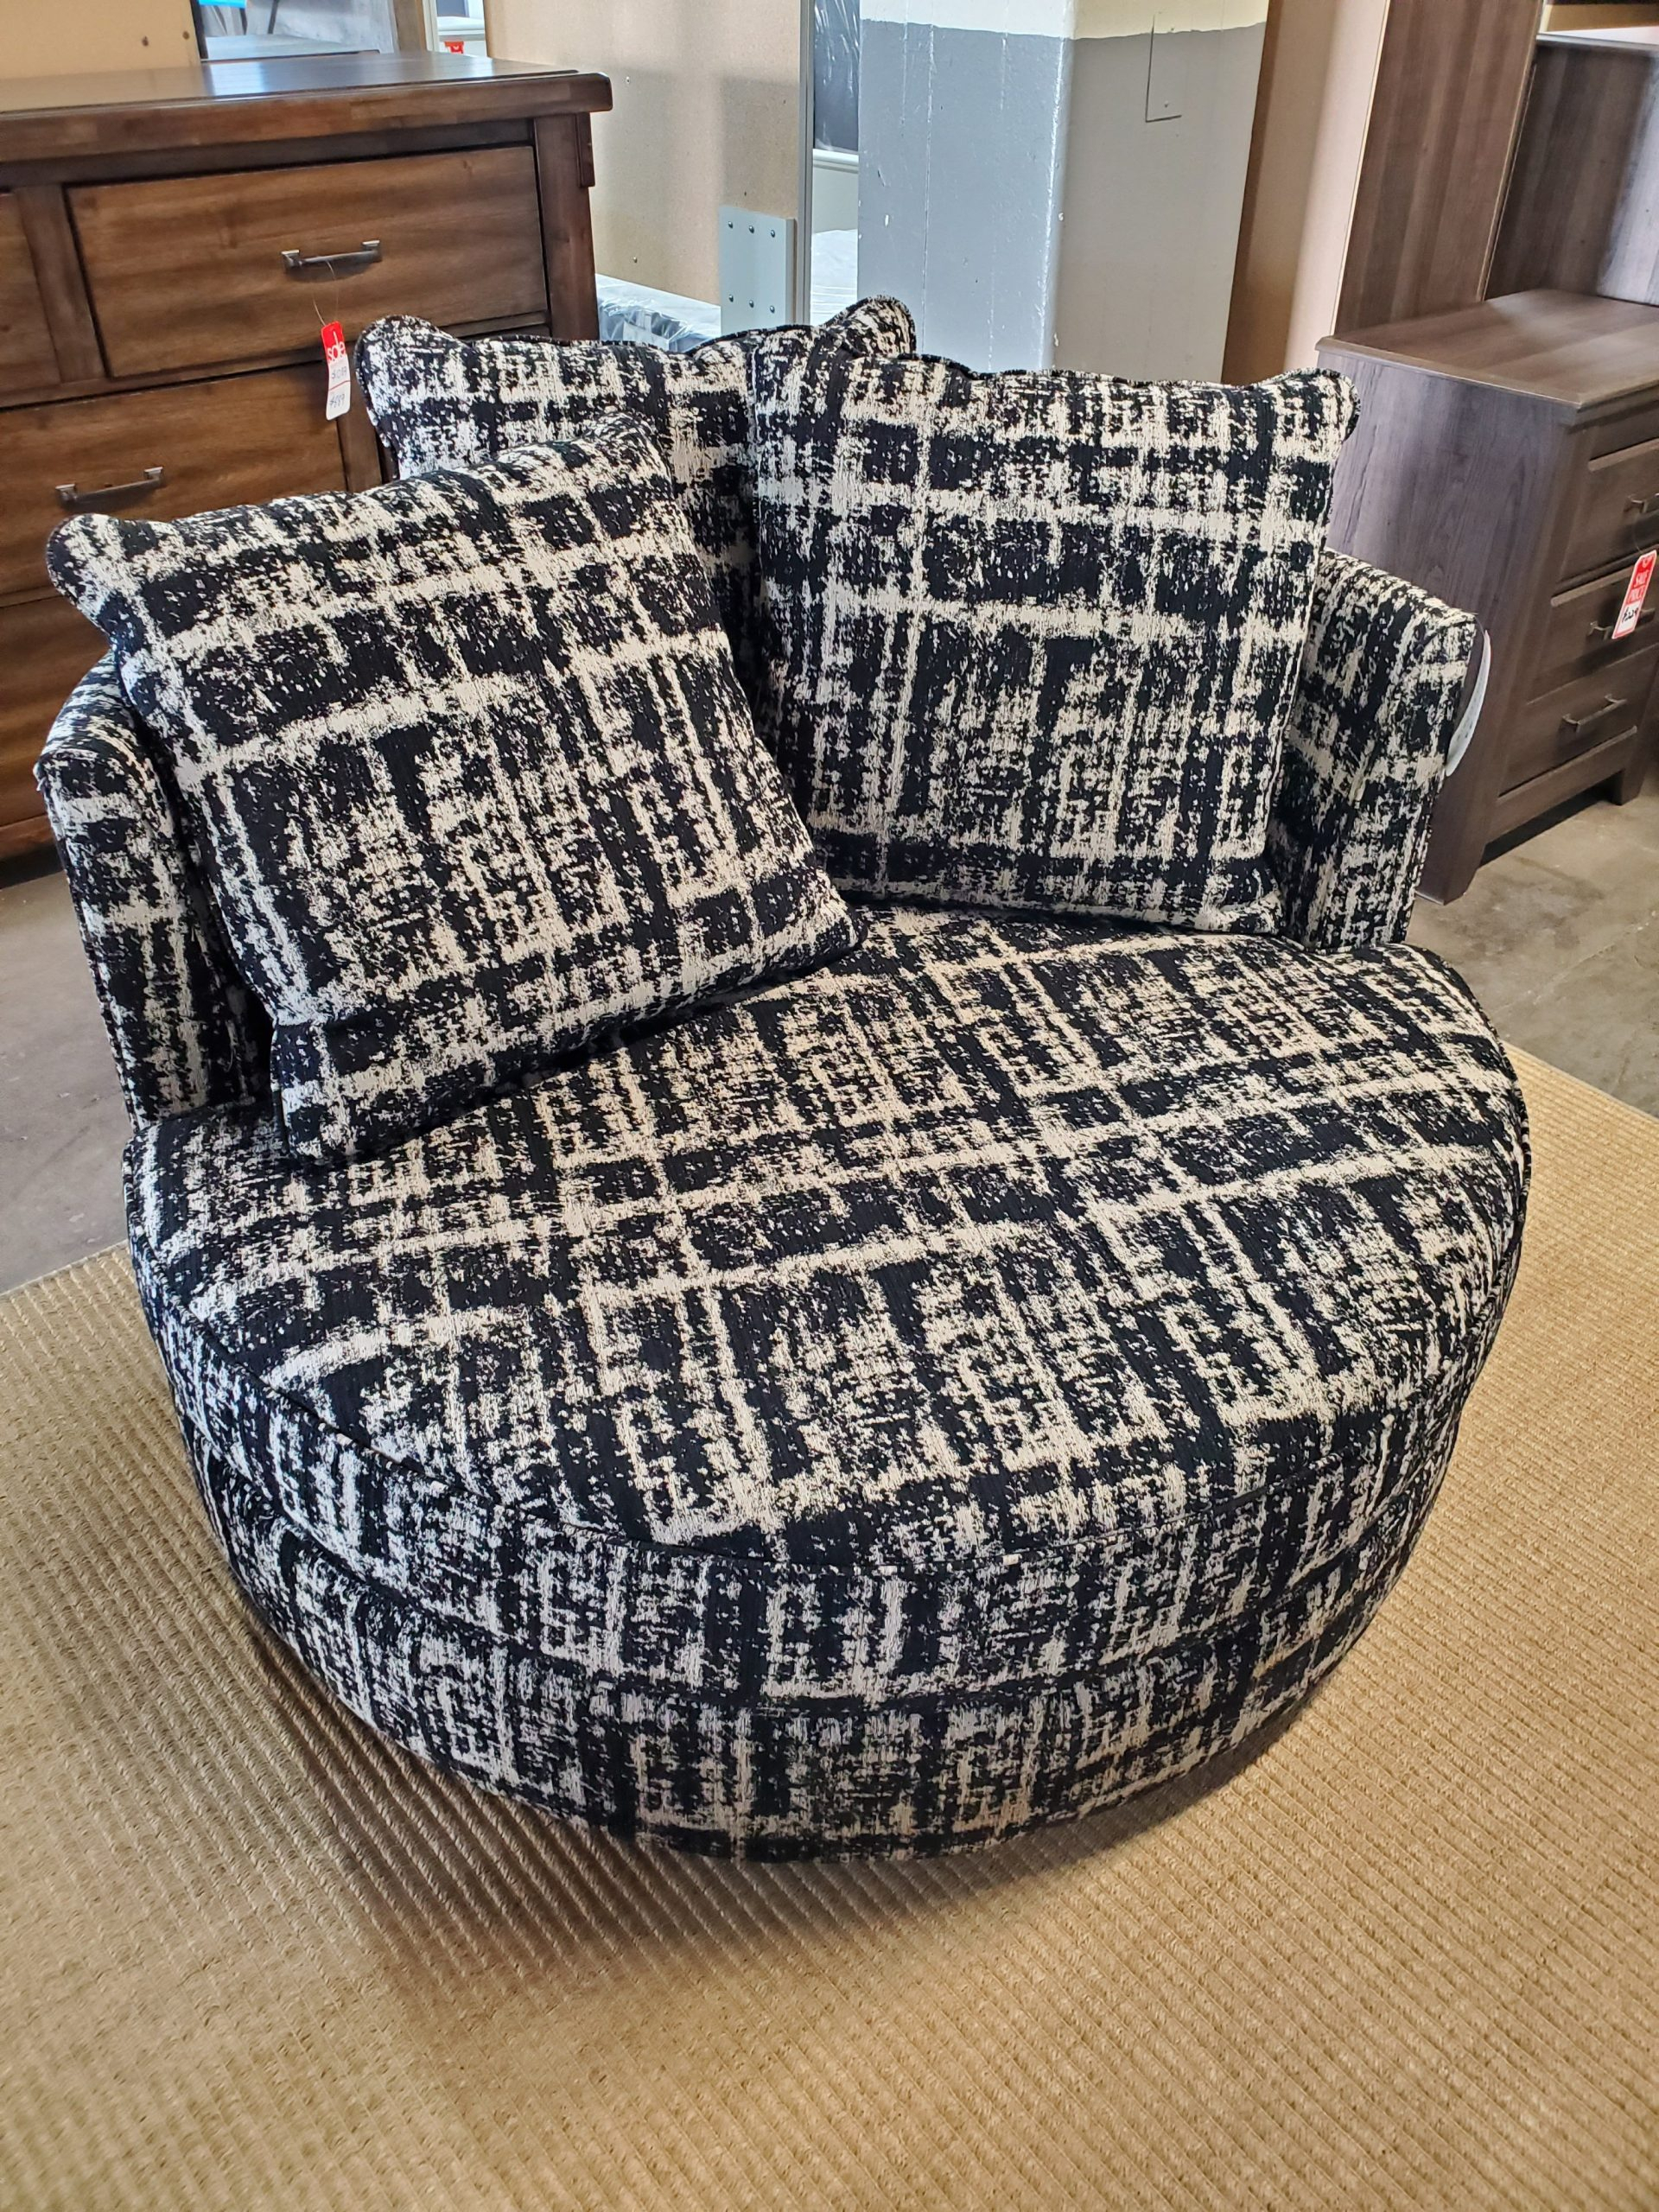 Swivel Cuddler Chair Accent Chairs, Accents, Furniture Pertaining To Cuddler Swivel Sofa Chairs (View 9 of 15)